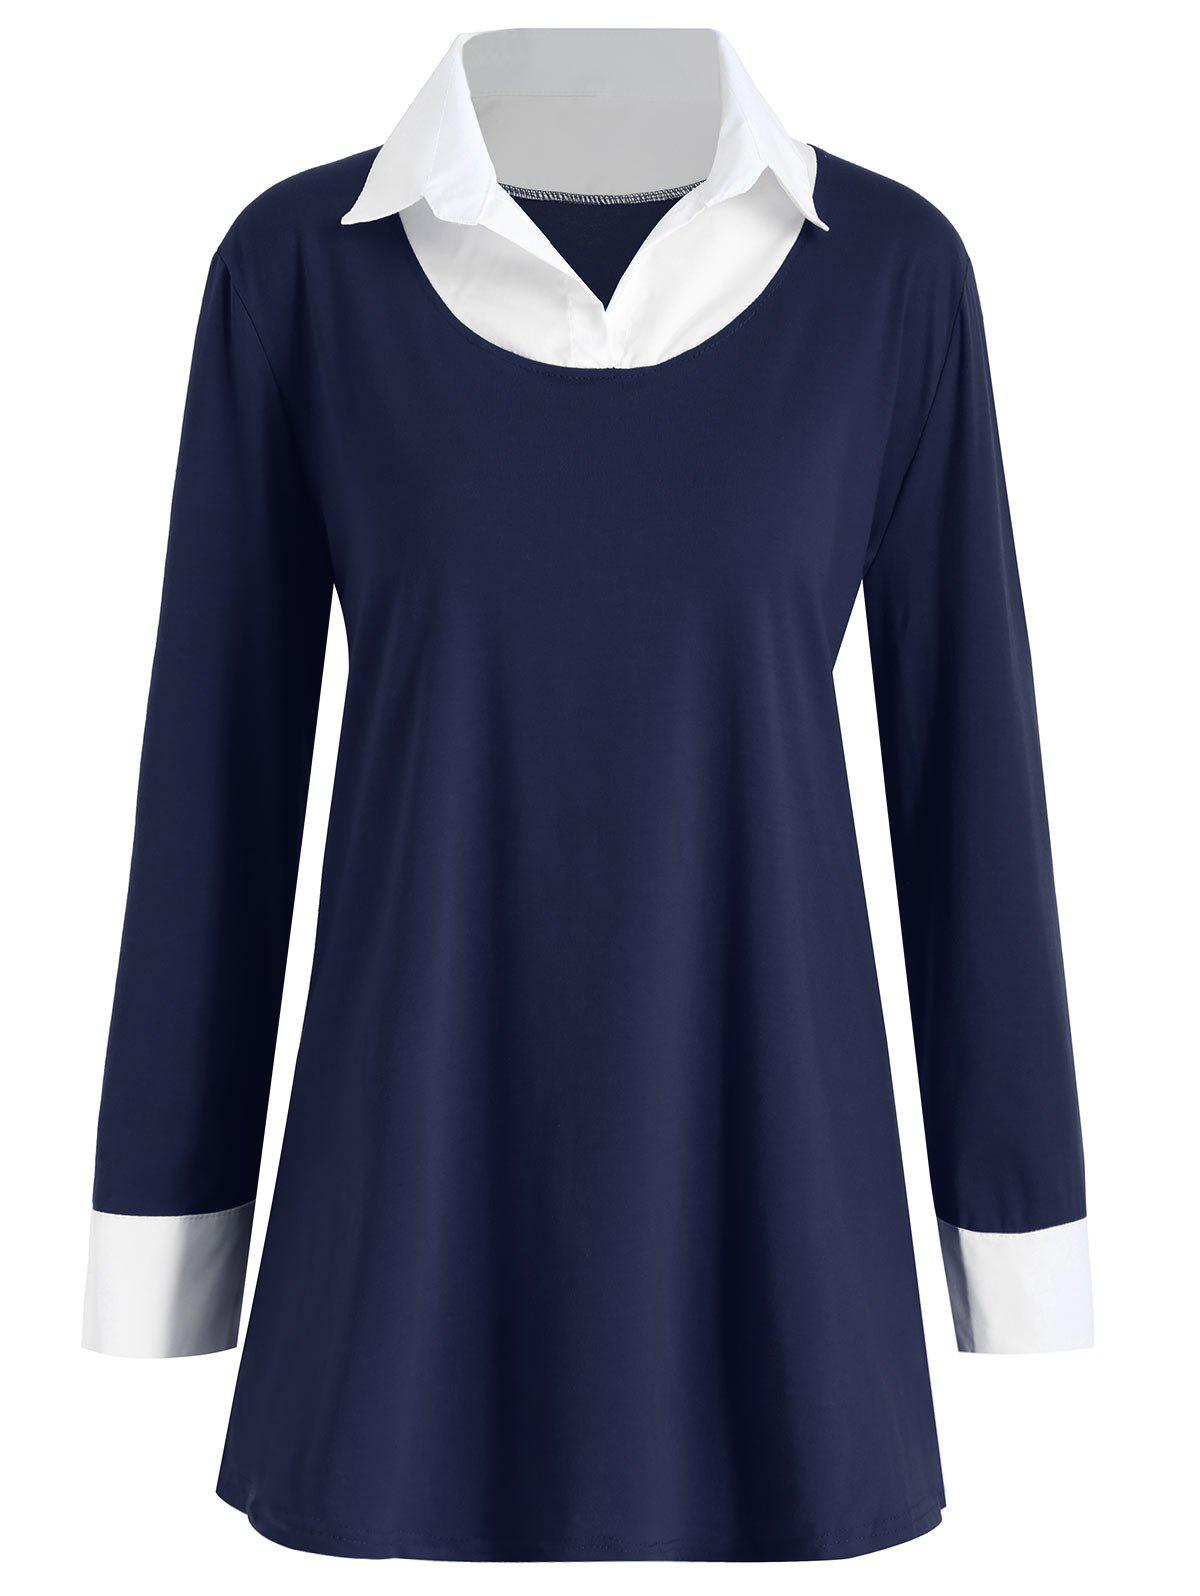 Two Tone Shirt Collar Plus Size TeeWOMEN<br><br>Size: 3XL; Color: PURPLISH BLUE; Material: Cotton,Polyester; Shirt Length: Long; Sleeve Length: Full; Collar: Shirt Collar; Style: Fashion; Season: Fall; Pattern Type: Others; Weight: 0.2950kg; Package Contents: 1 x T-shirt;